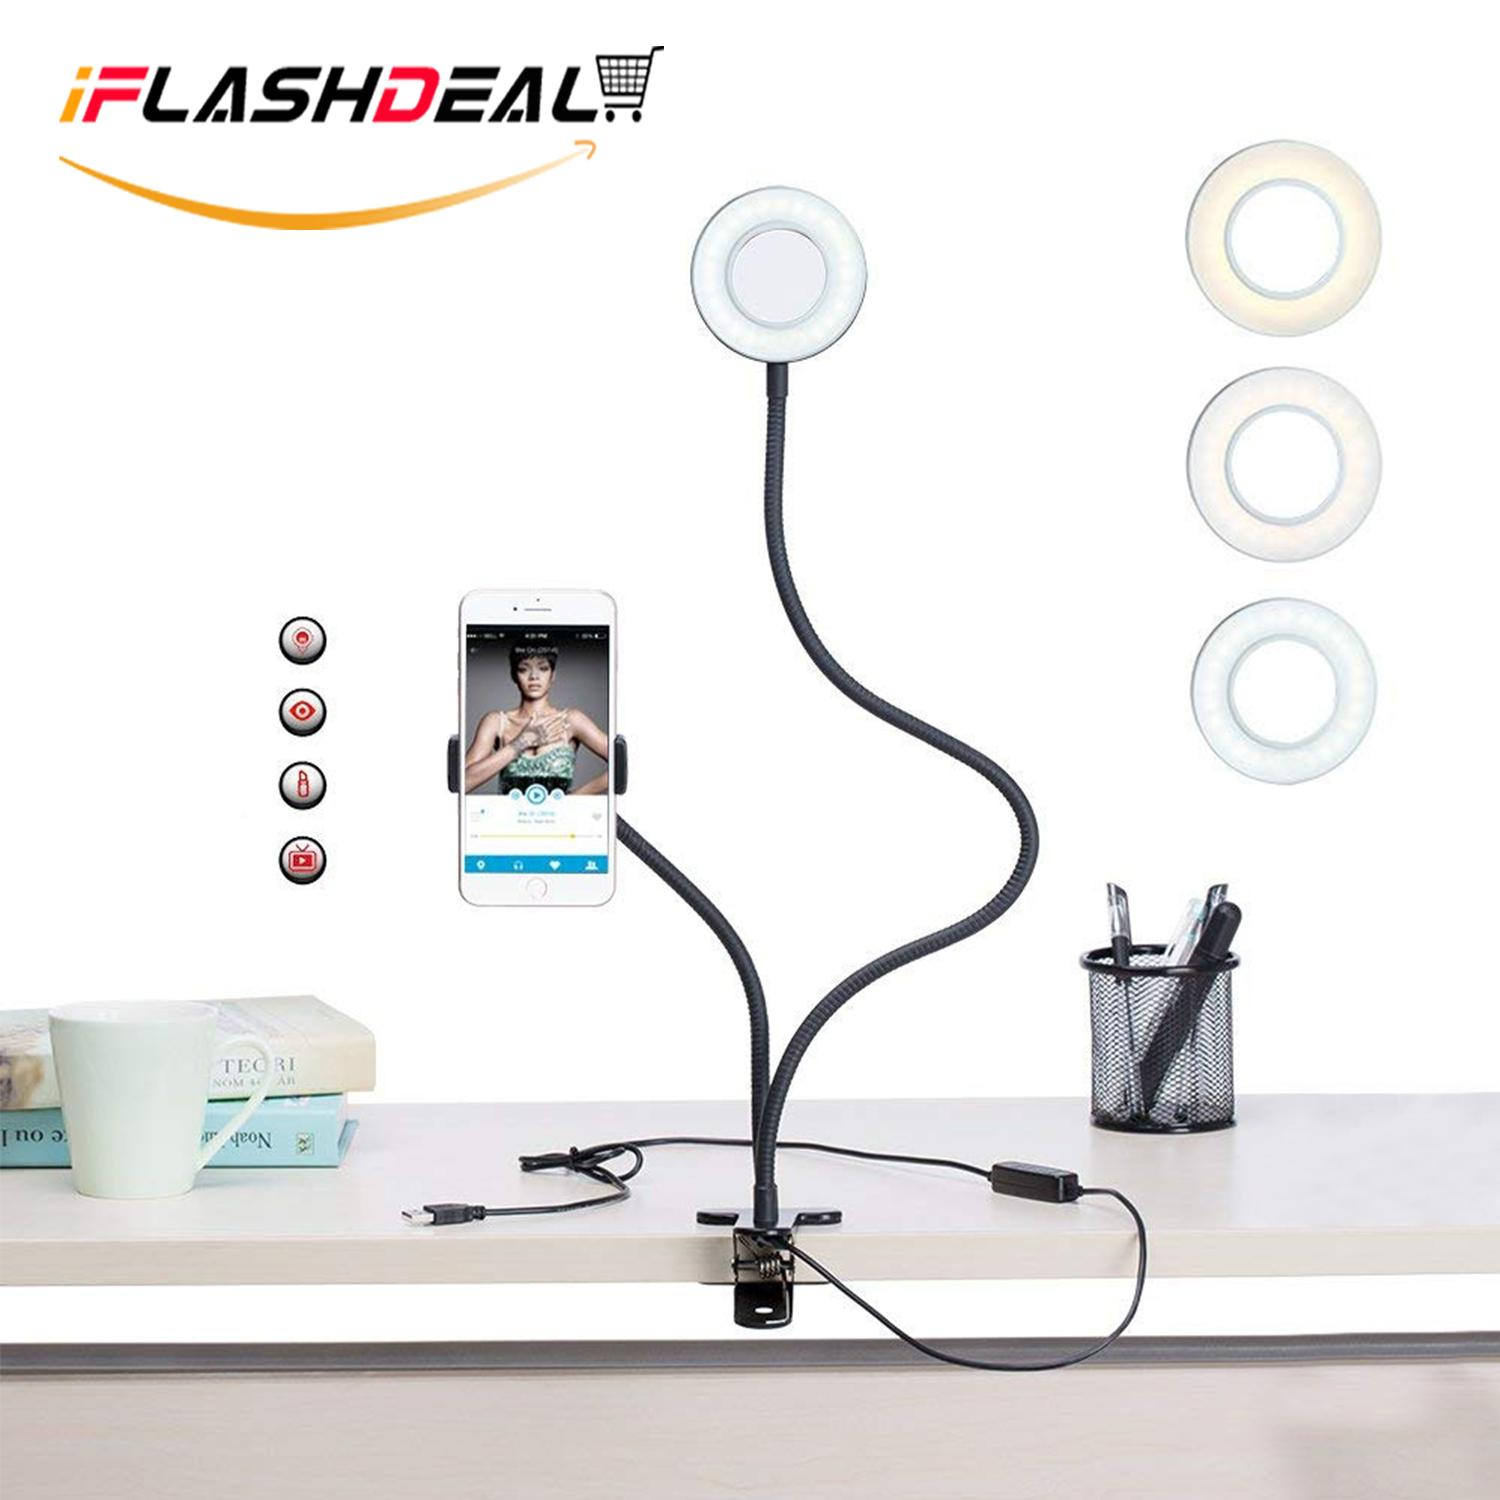 Iflashdeal Lampu Flash Handphone Selfie Ring Light Phone Camera Flash Lights Cell Phone Holder Stand Led Camera Light Lazy Bracket Mobile Phone Clipper Led Desk Lamp Bedroom, Office, Kitchen, Bathroom By Iflashdeal.